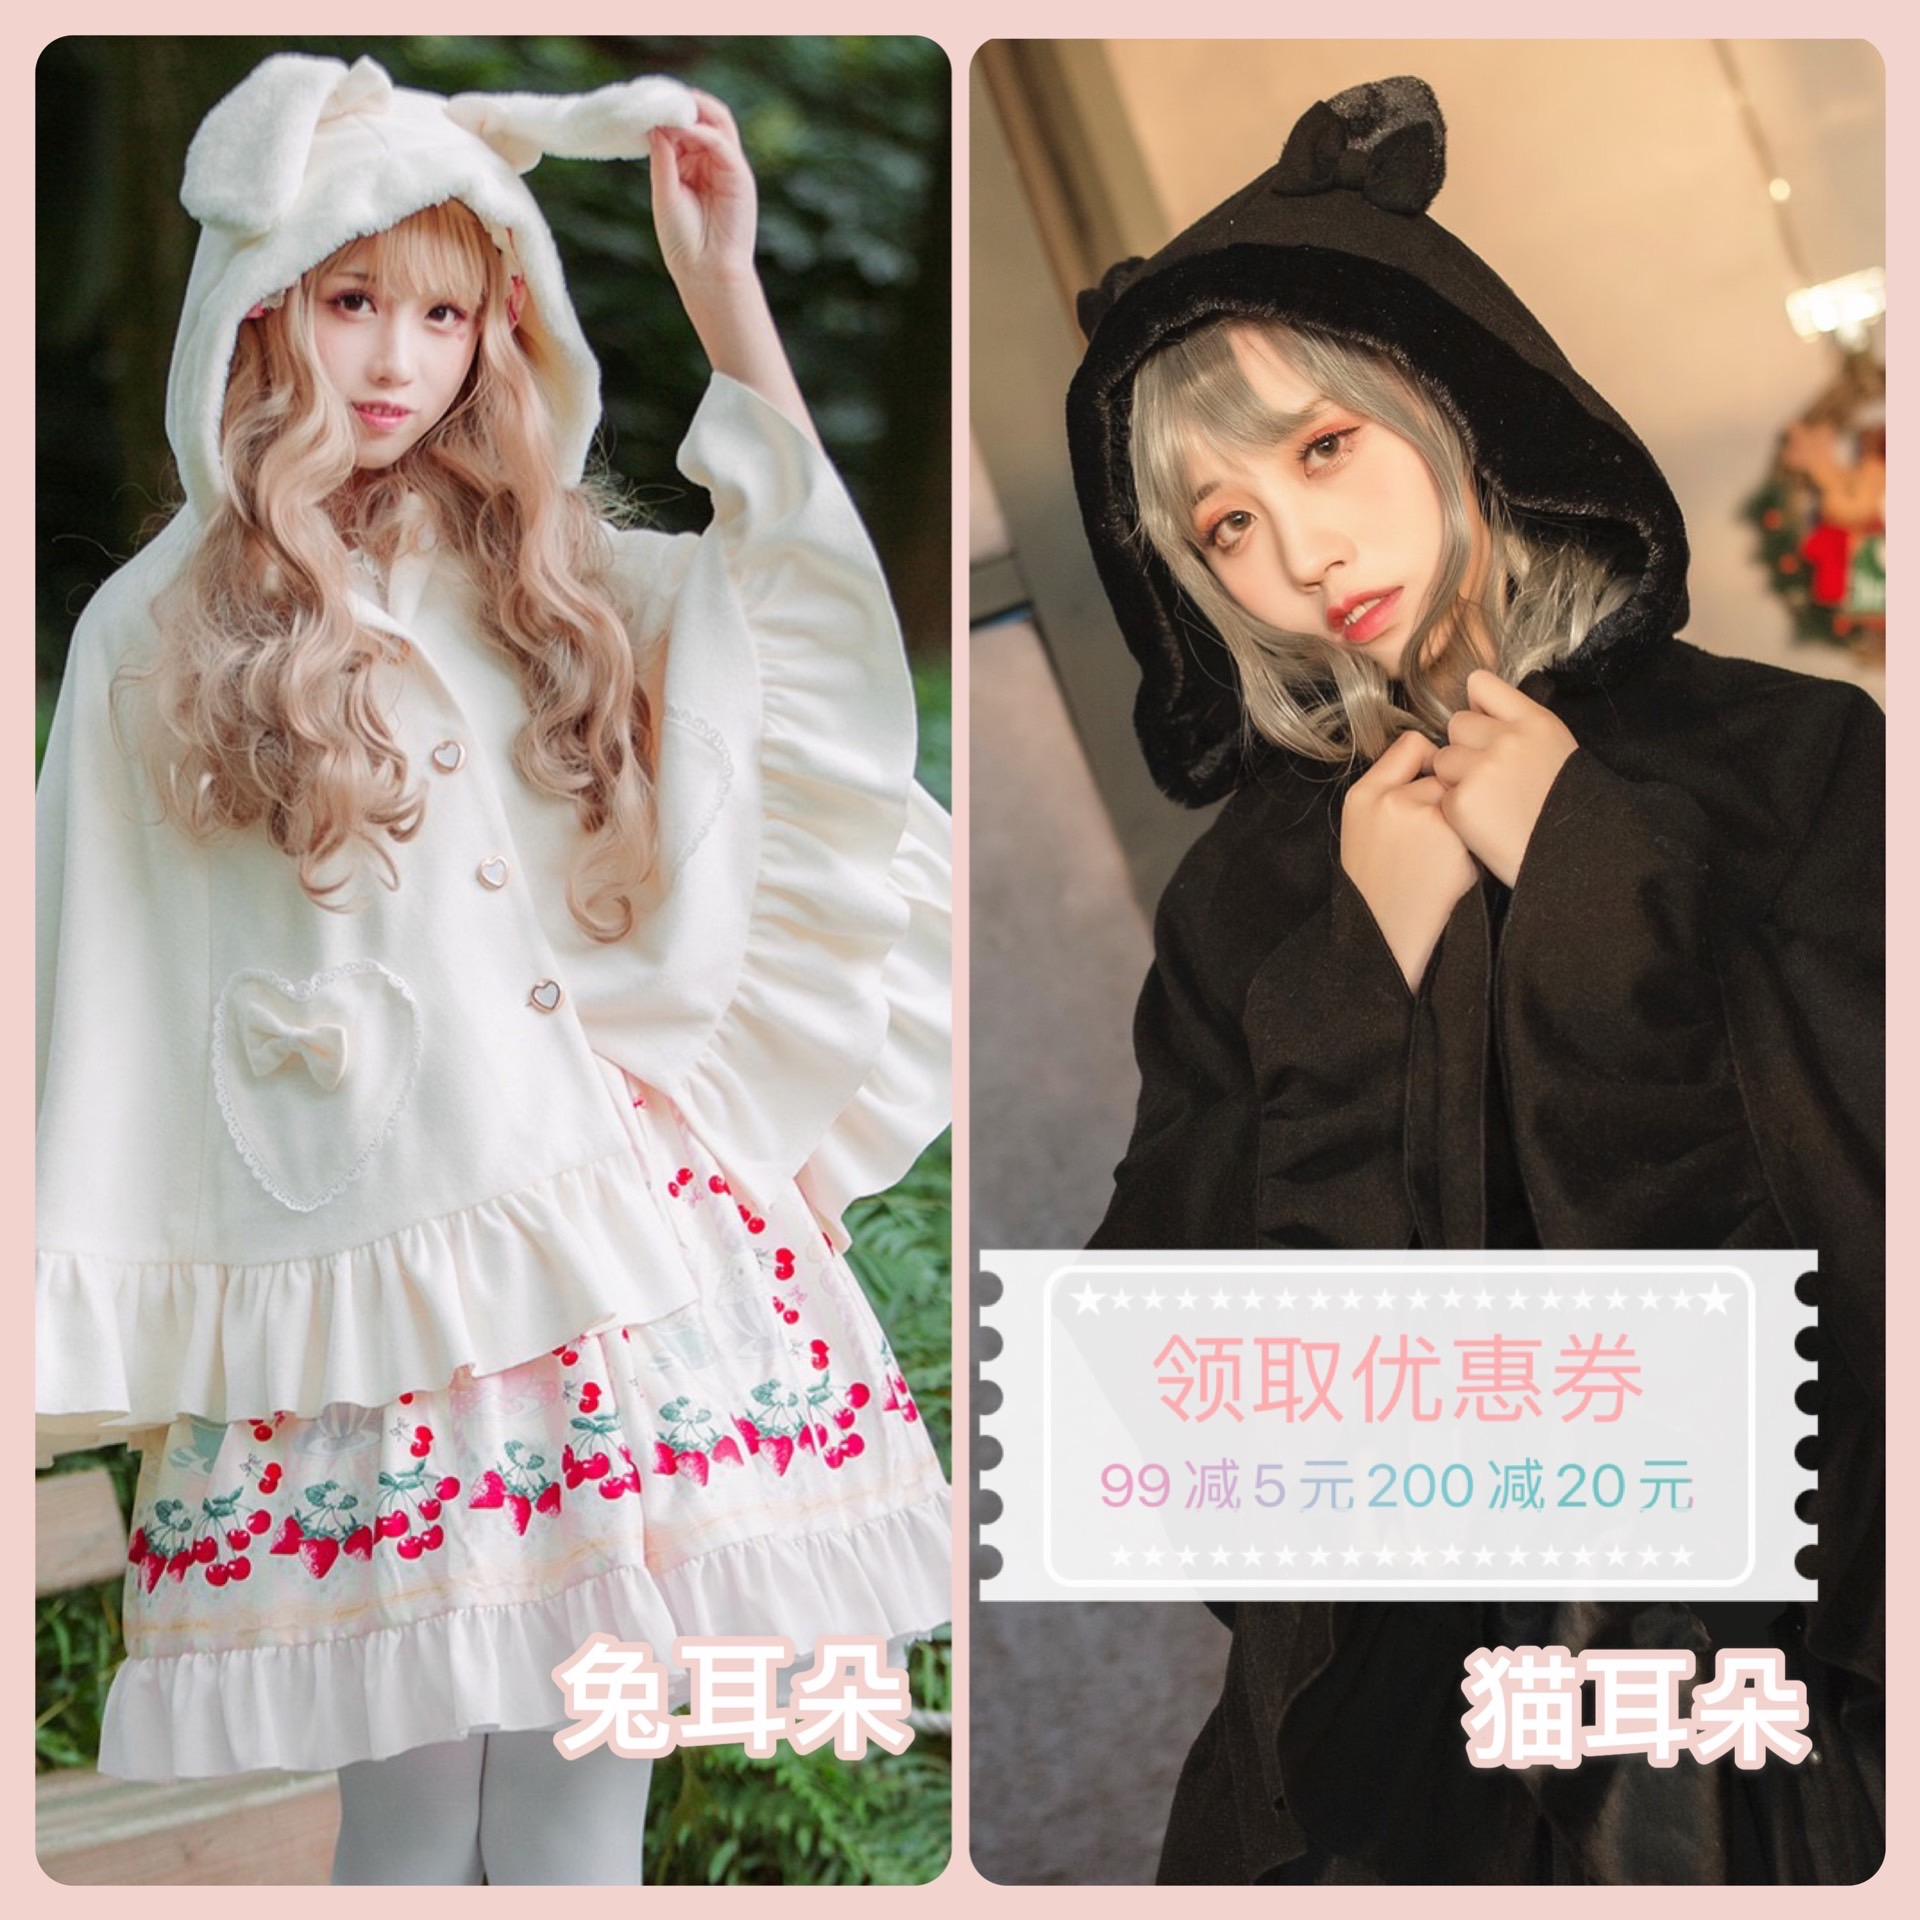 Brocade garden Lolita tweed rabbit ear bow dark autumn winter coat cats ear cape coat